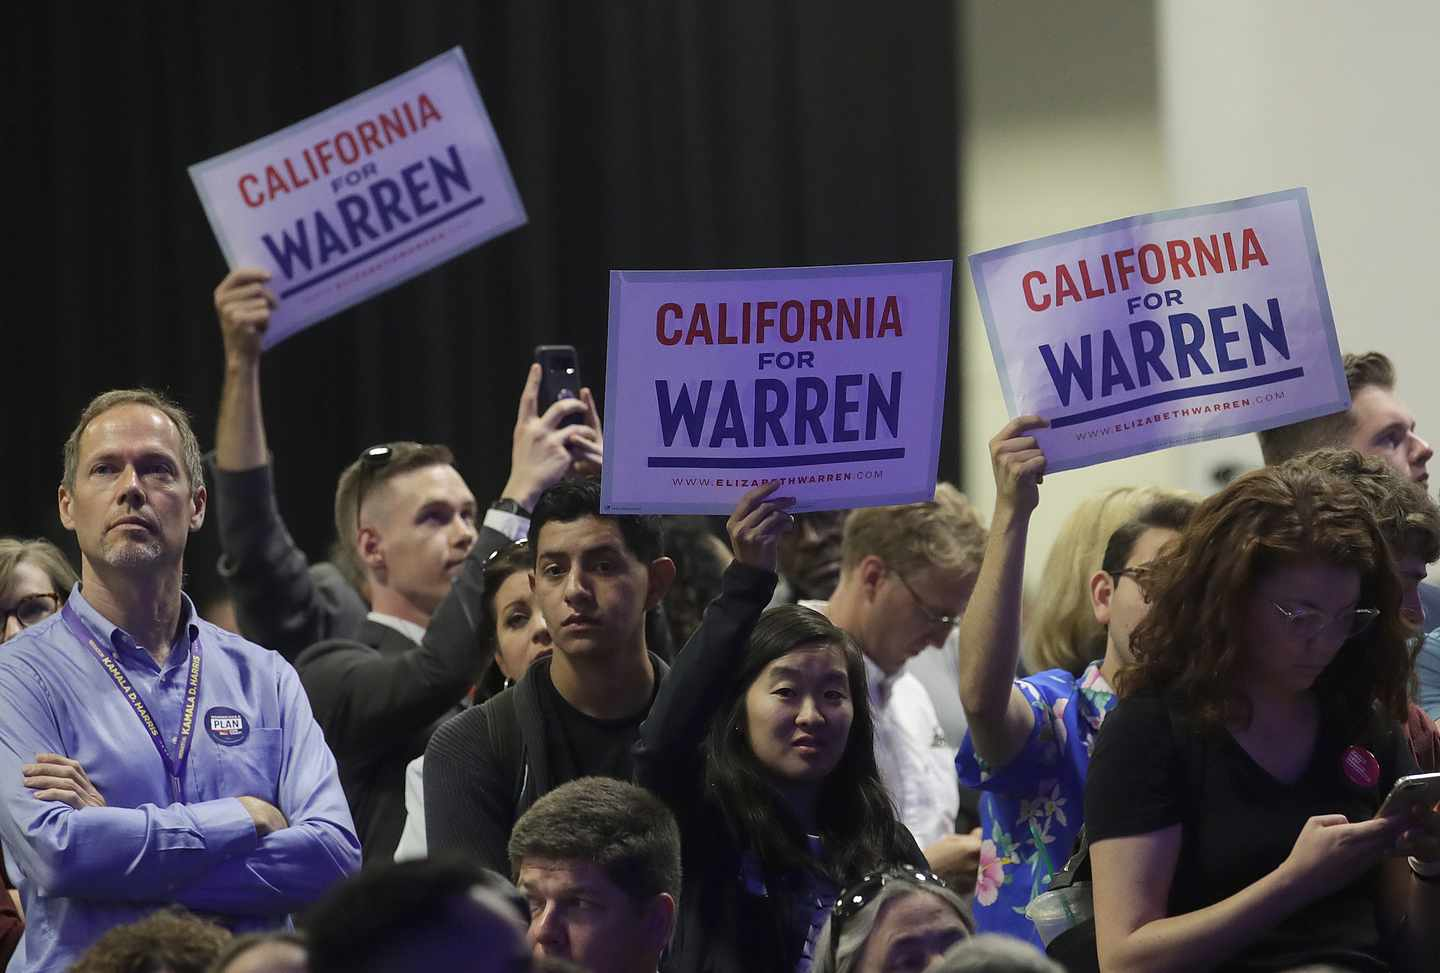 Could California be Warren's Golden Ticket?